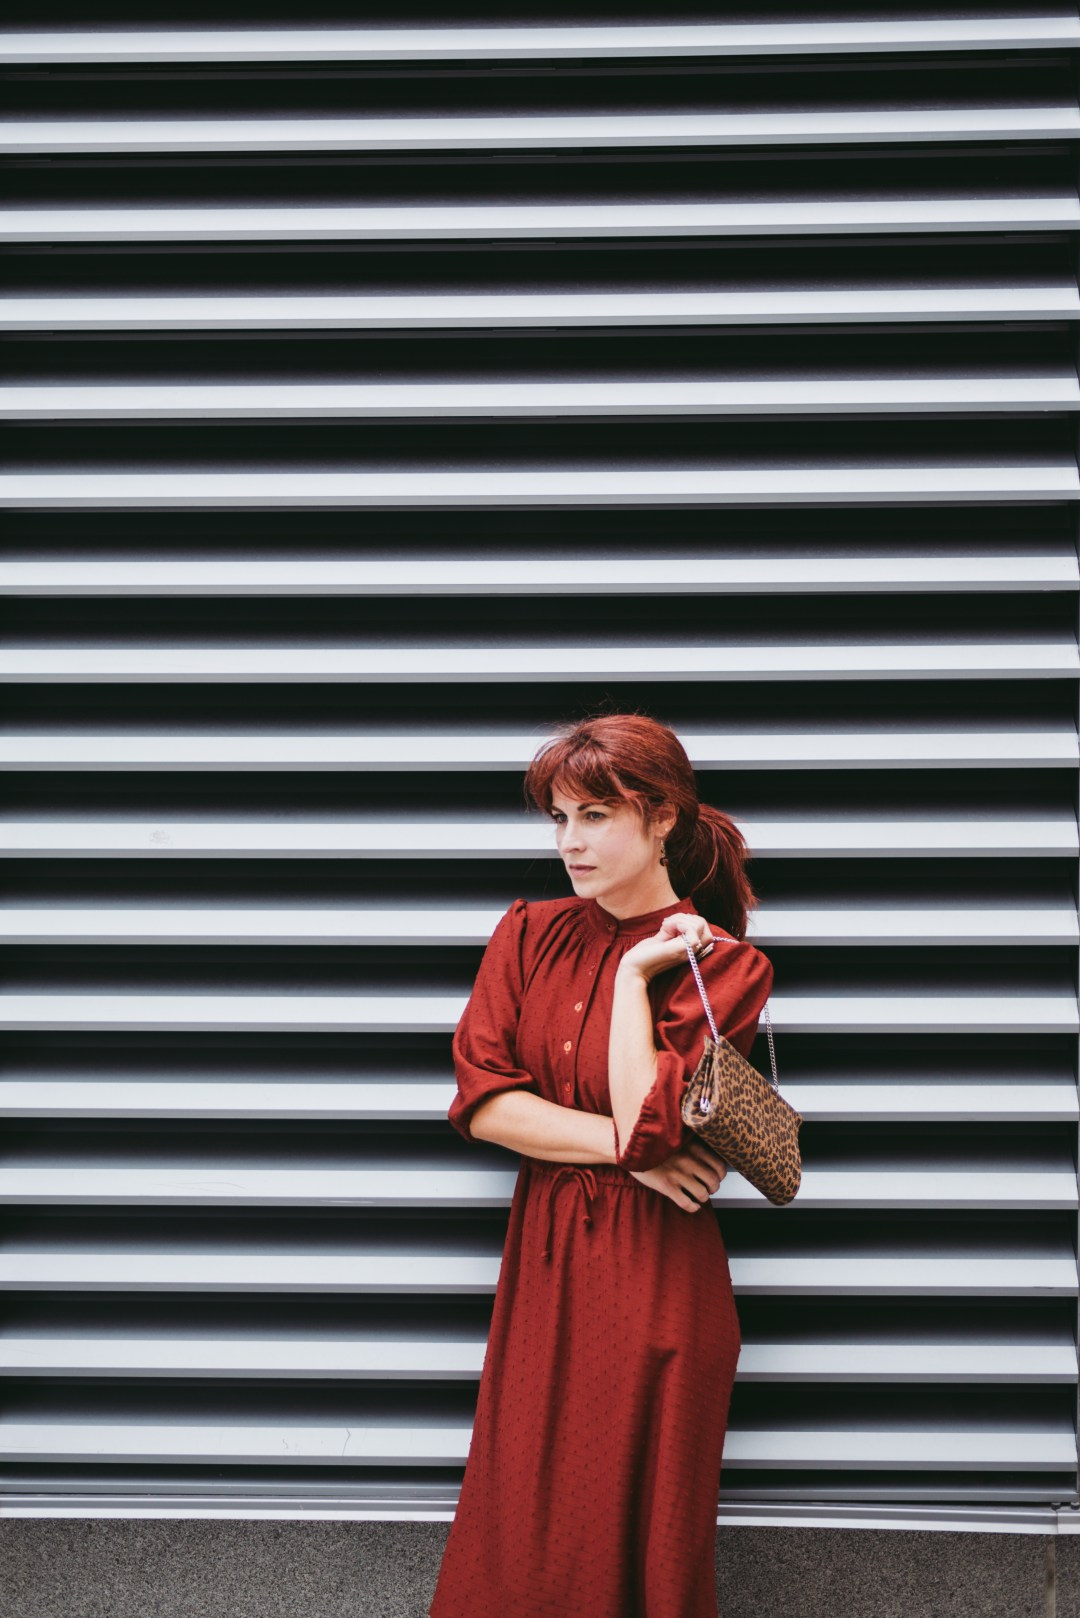 LEOPARD BAG, VINTAGE DRESS, RED HAIR